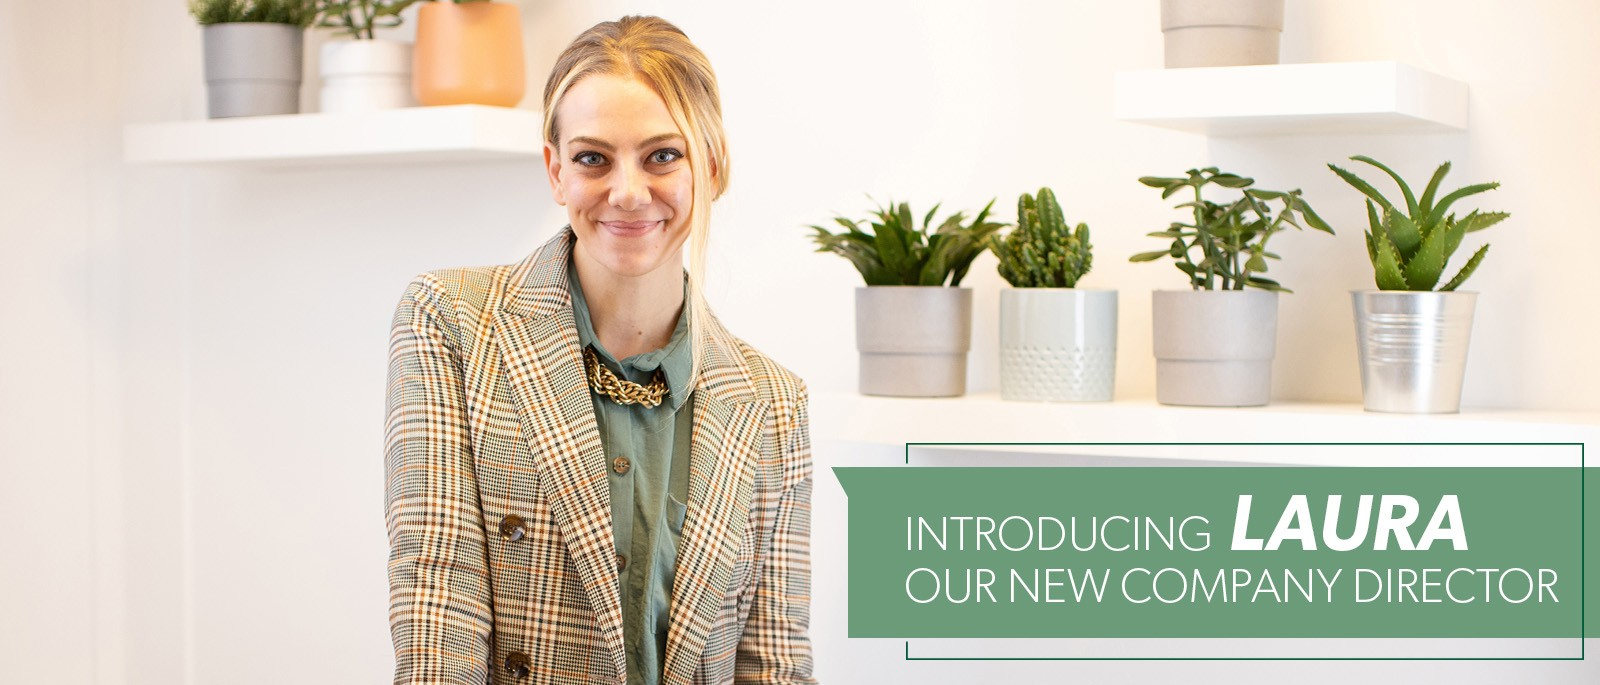 Whitenoise appoints Laura Smyth as a new Company Director